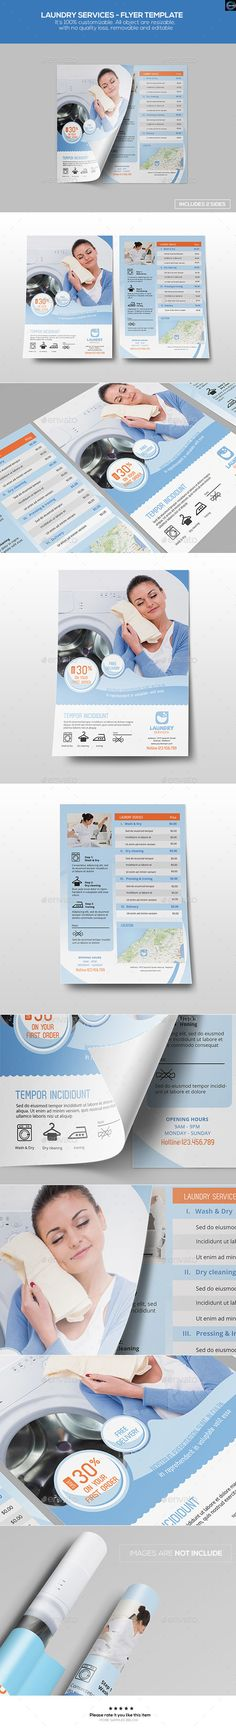 laundry flyers templates - laundry service behance and laundry on pinterest